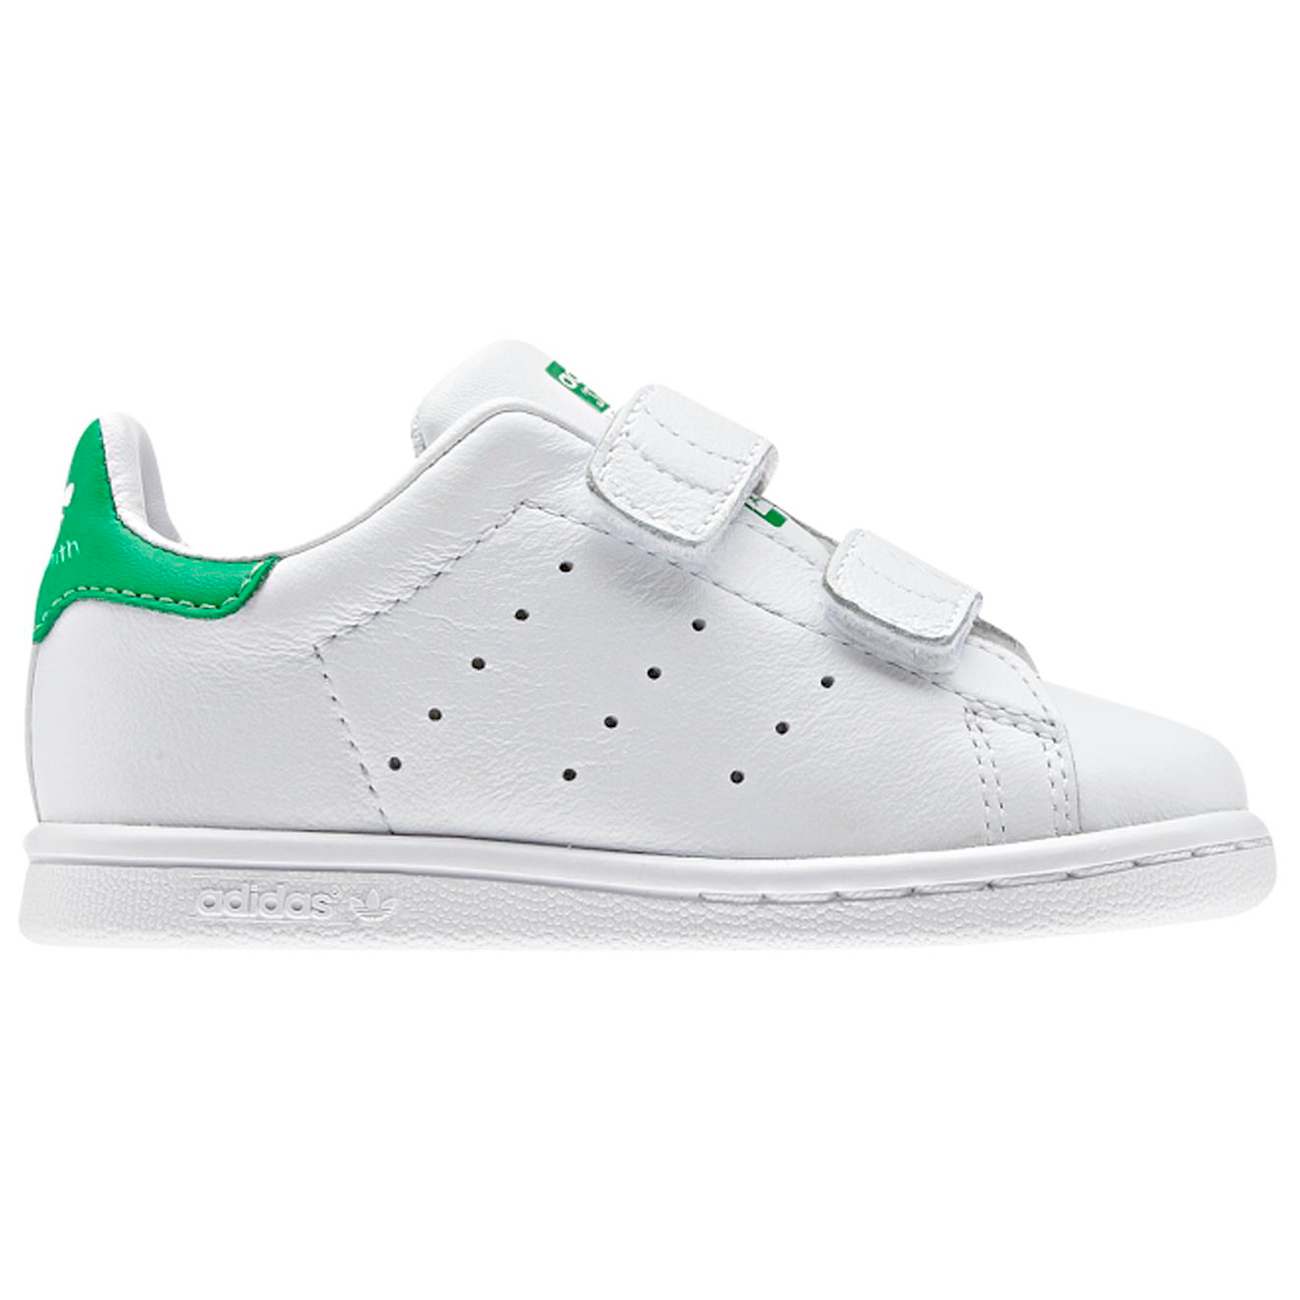 huge discount 4048f ad2ad adidas Stan Smith Sneakers White/Green M20609